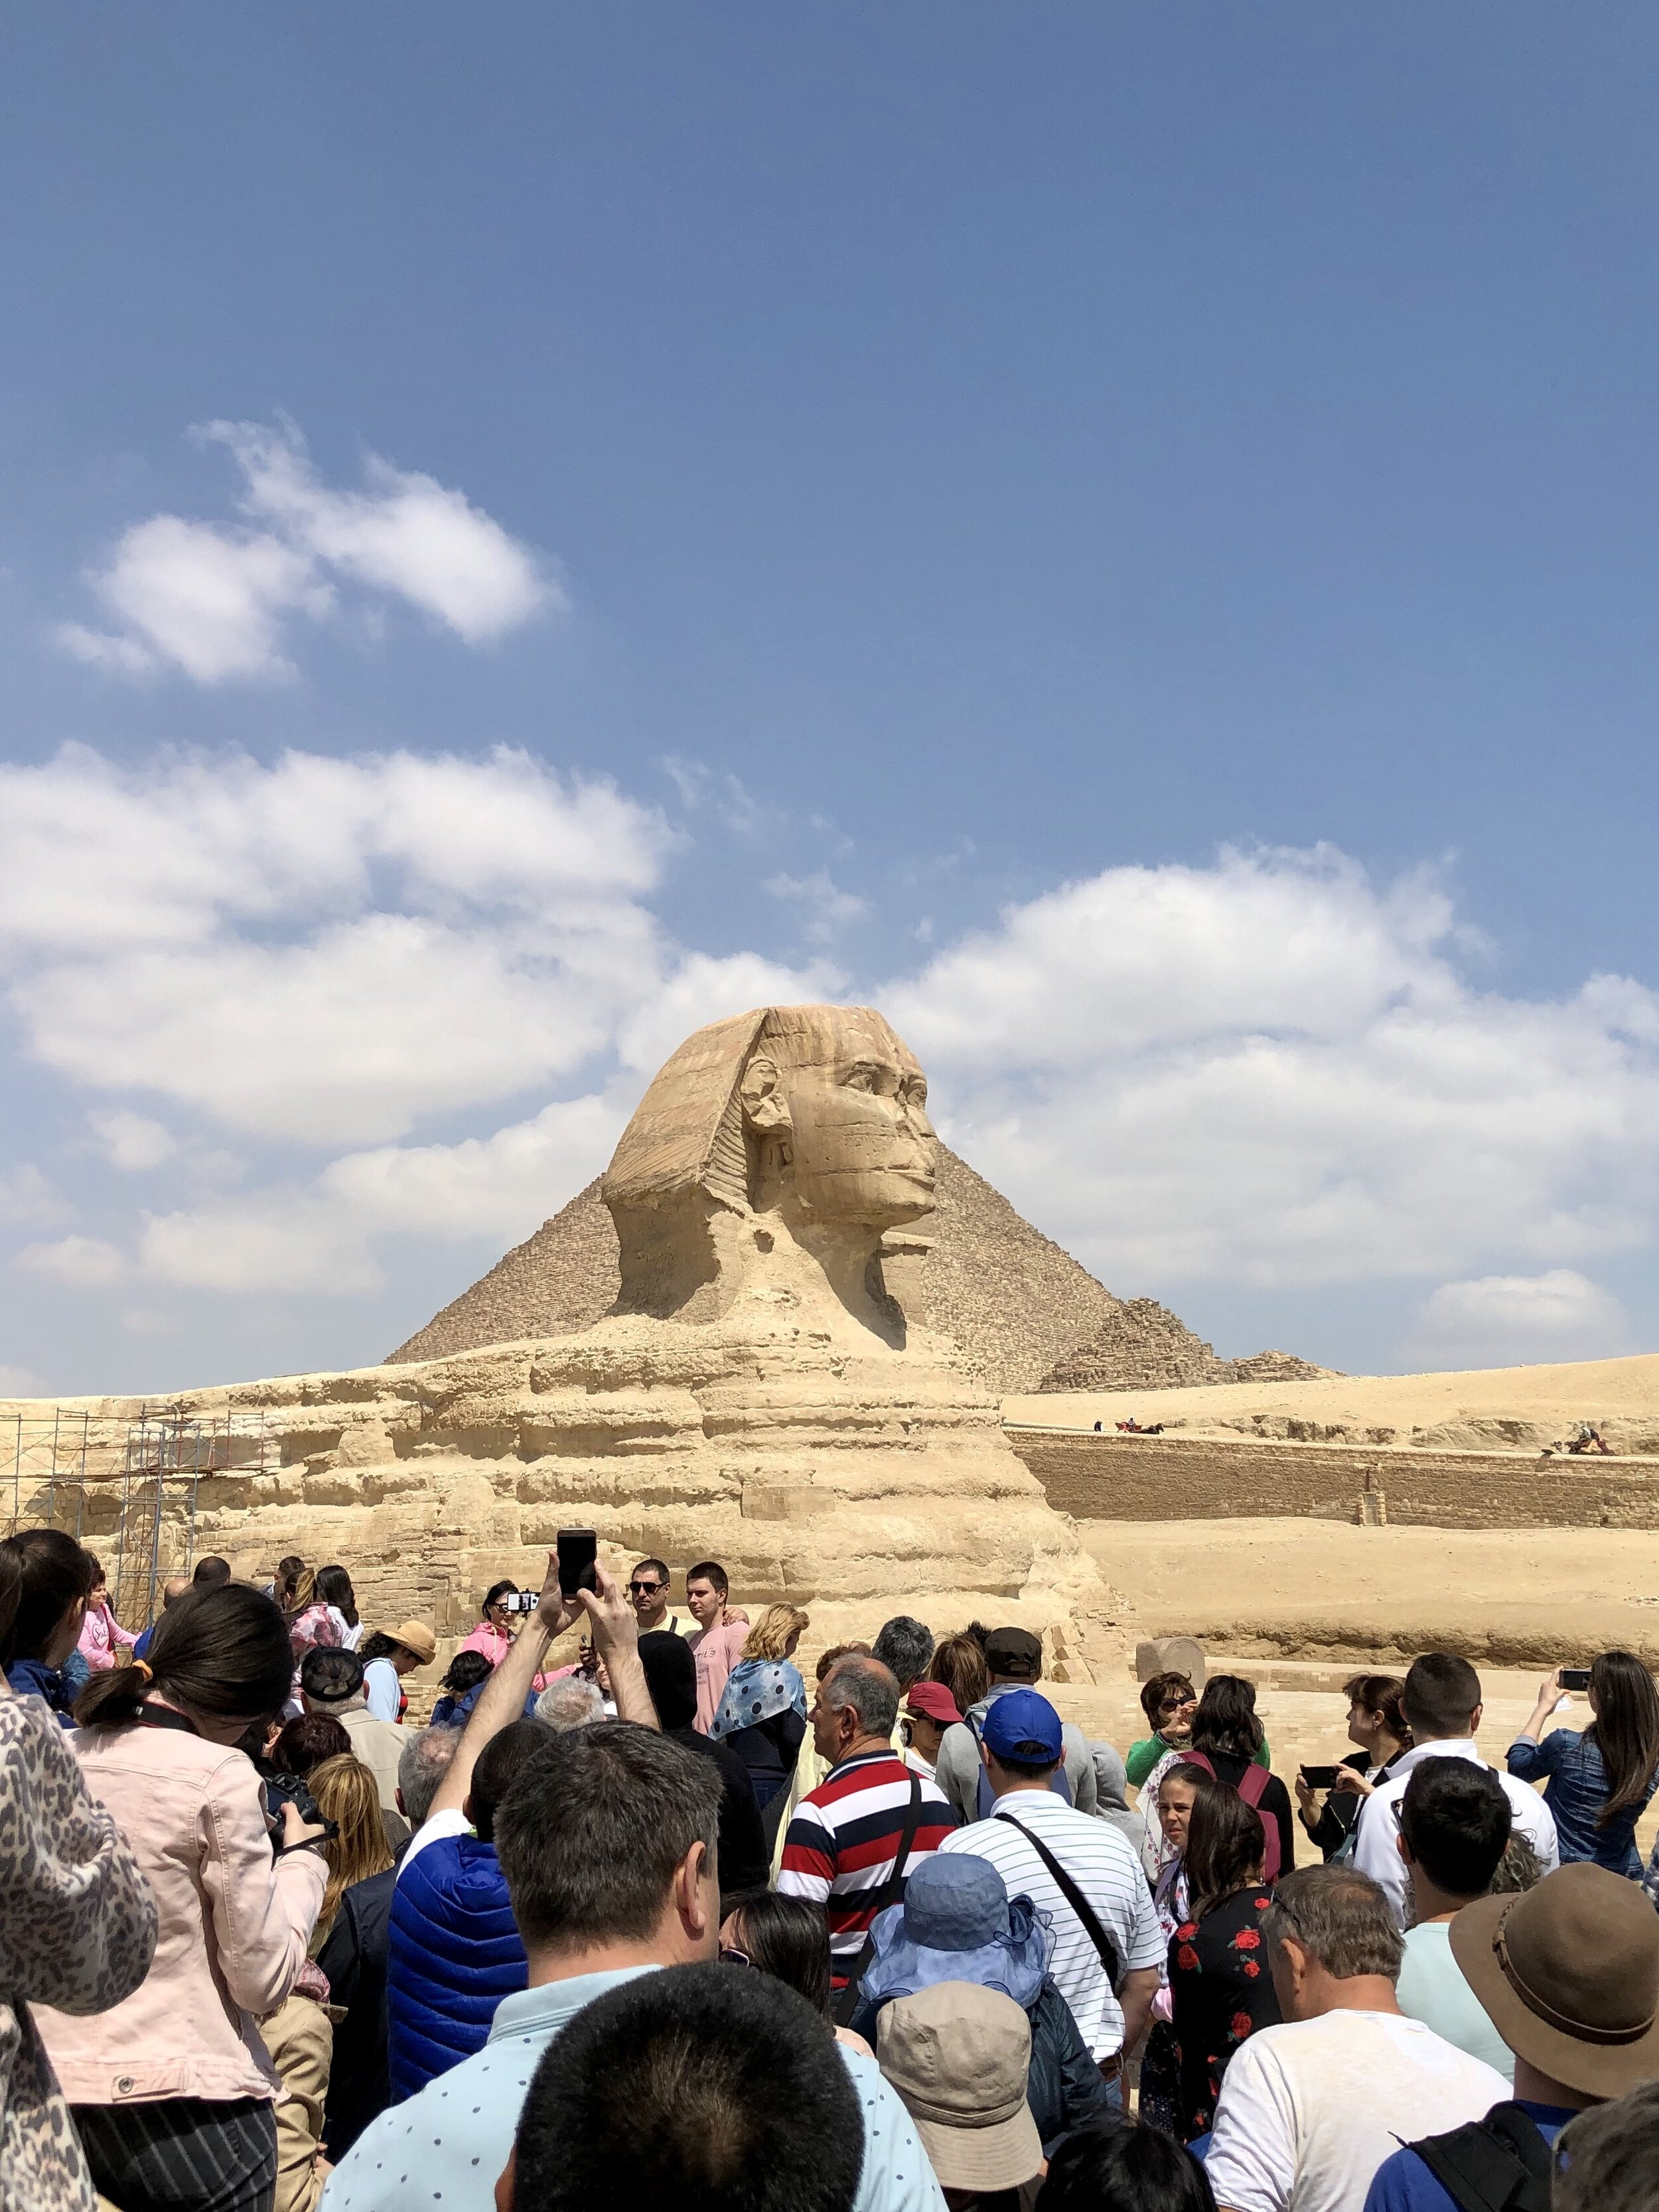 You can get a good shot of the Sphinx, but you'll have to fight your way through the crowd